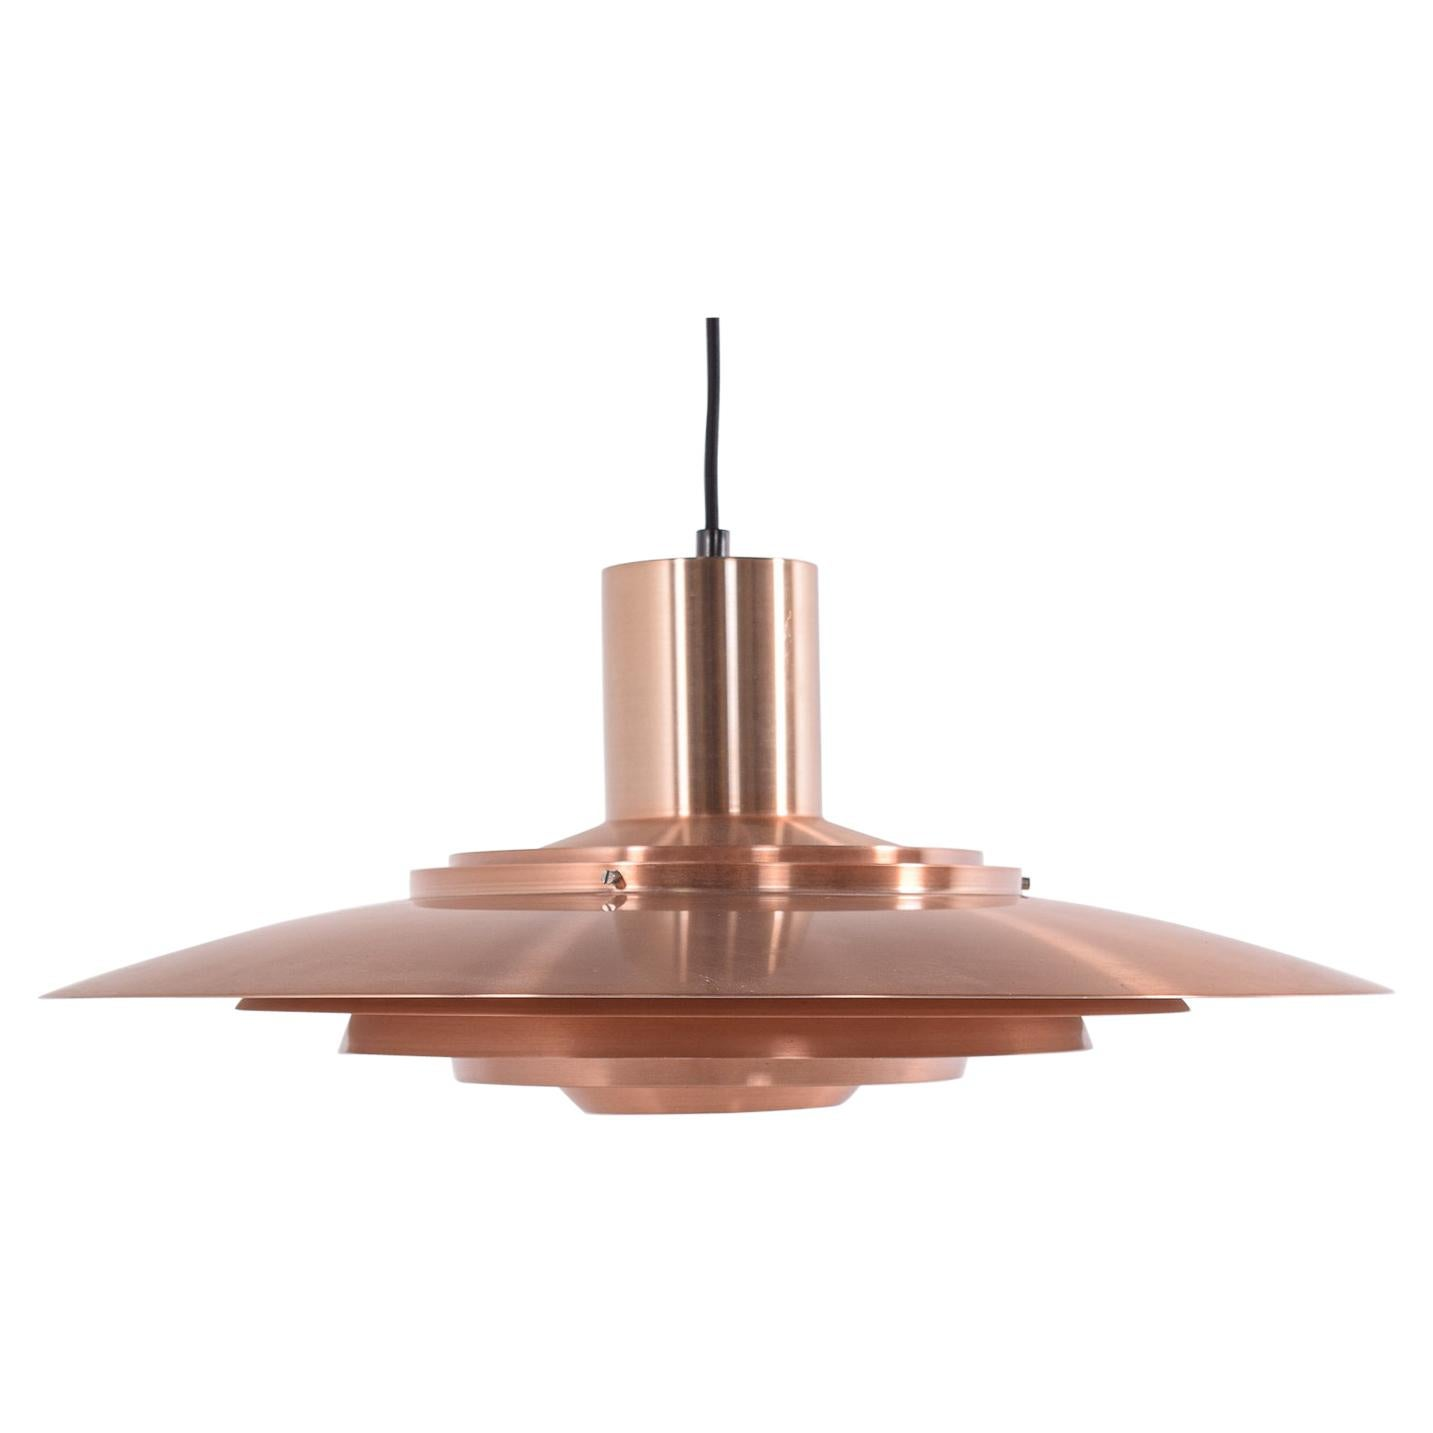 Mid Century Copper Ceiling Light by Kastholm & Fabricius for Nordisk Solar, 1964